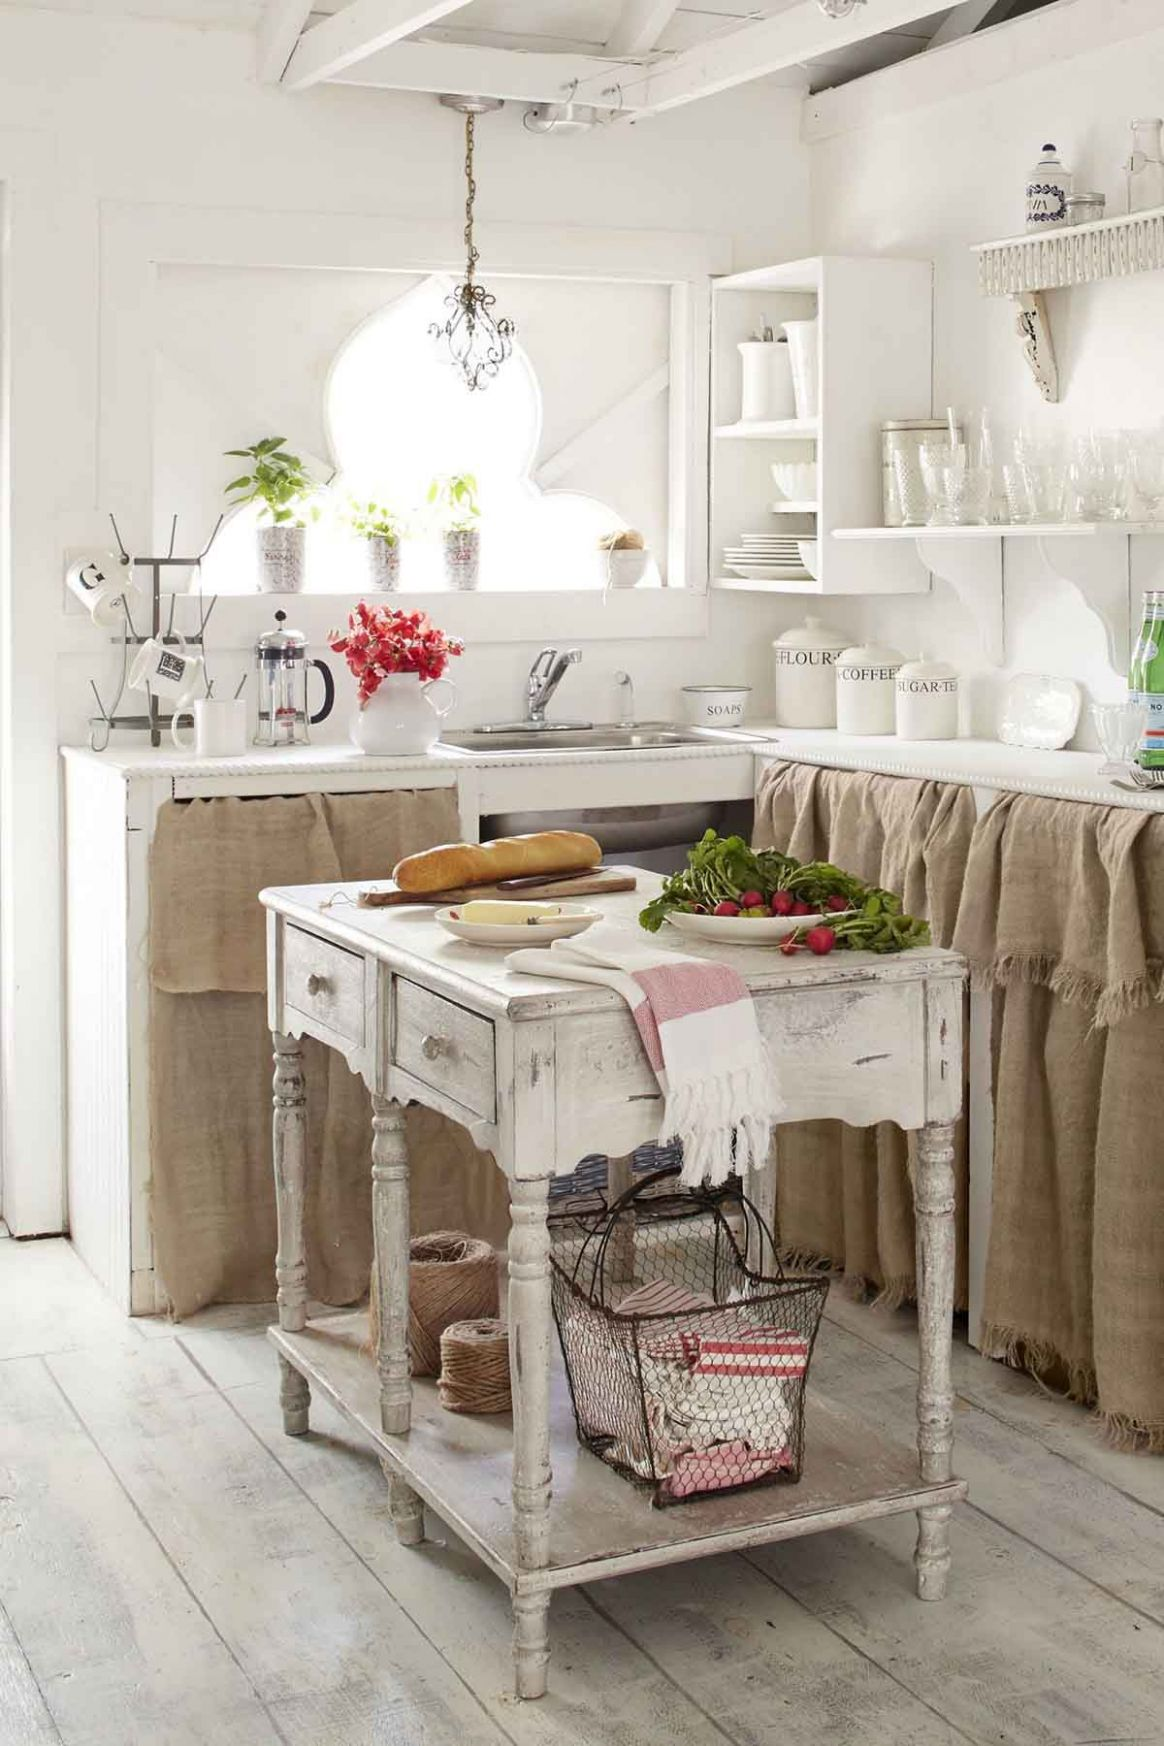 9 Best Vintage Kitchen Decor Ideas and Designs for 9